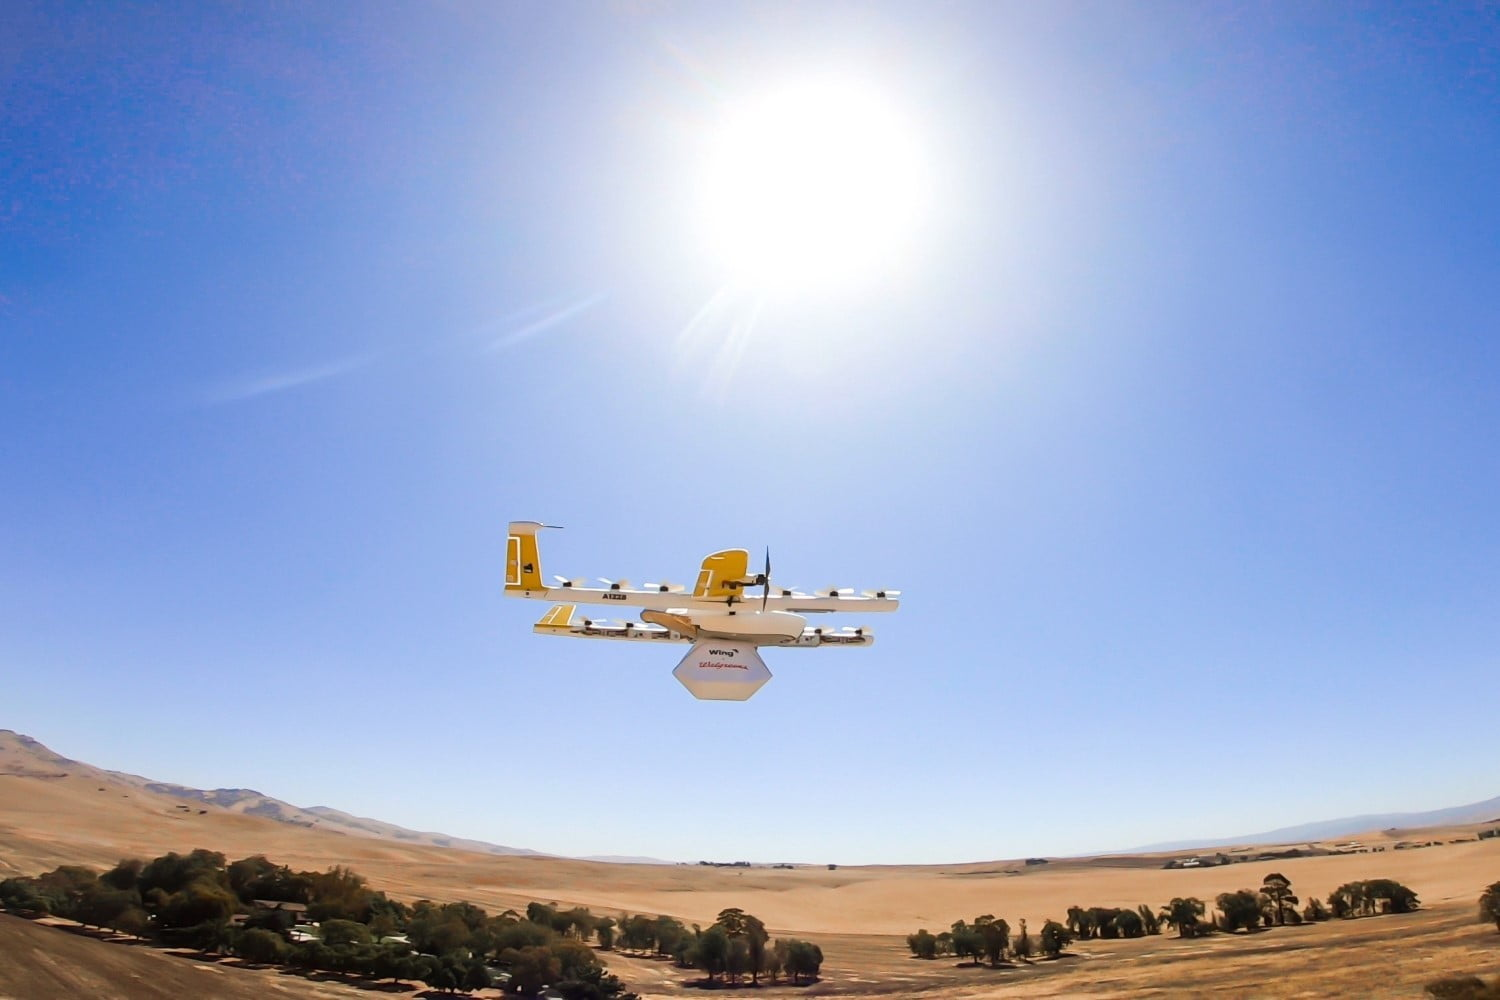 Google's Wing delivery drones will soon ship packages for FedEx and Walgreens